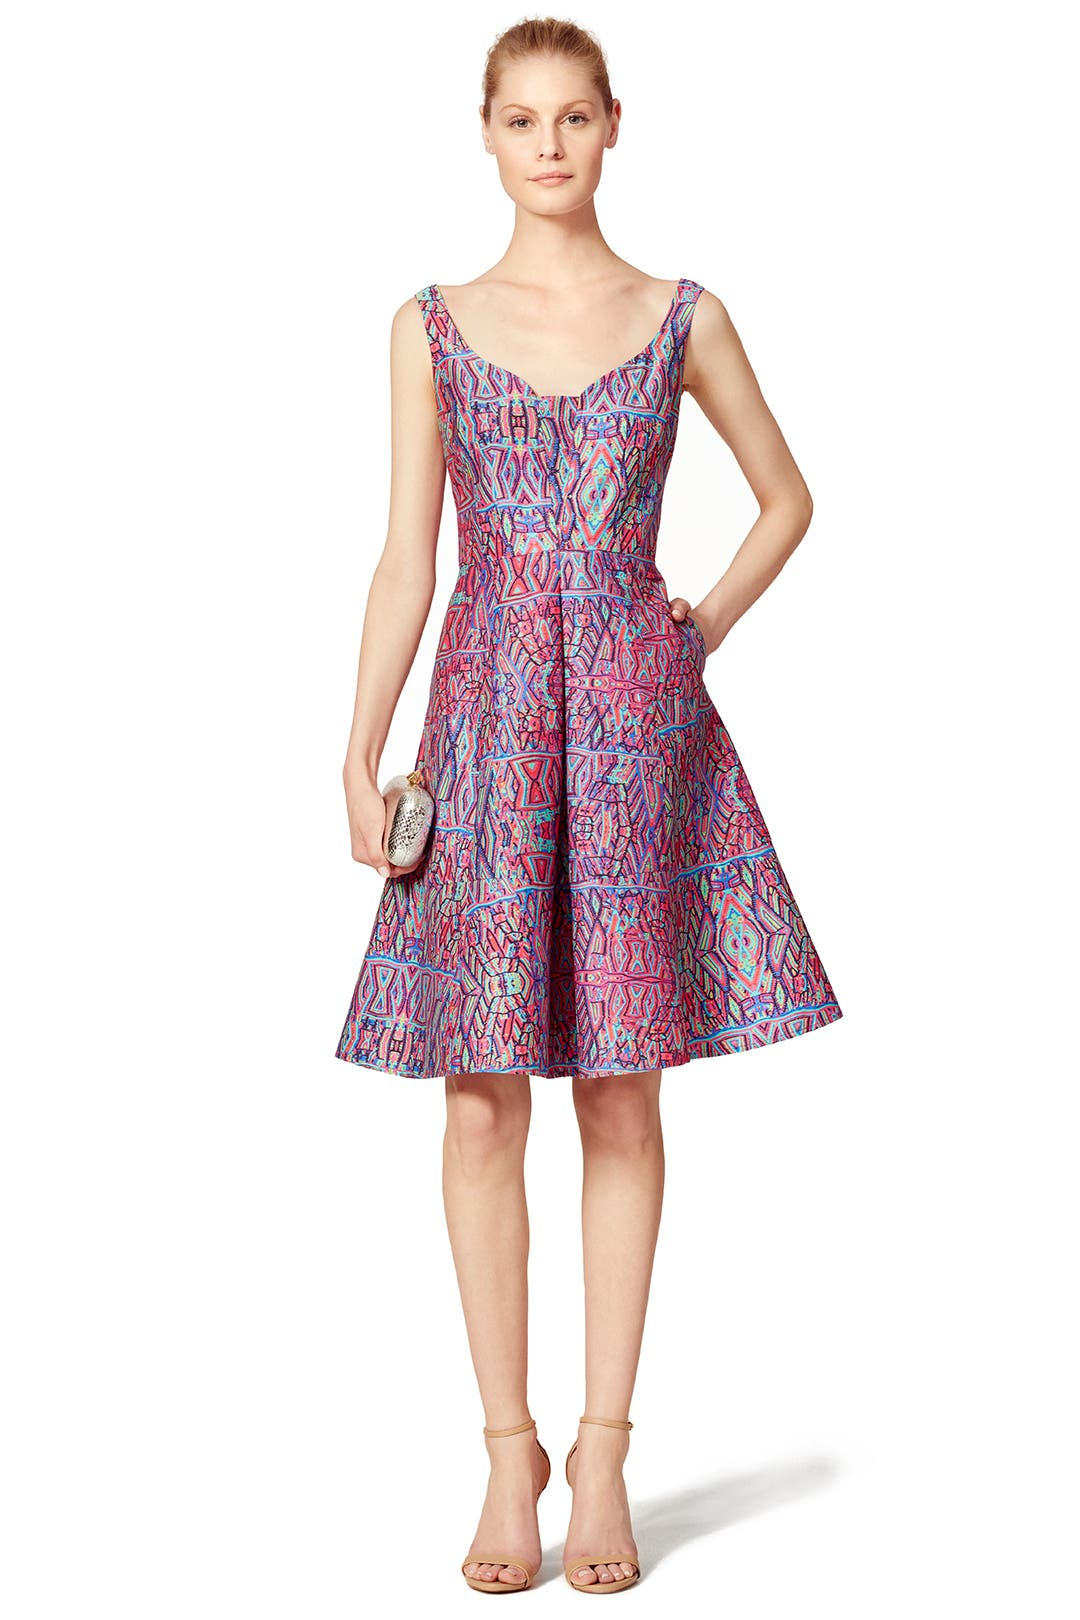 Italian Sun Sheath by DSQUARED2 for $63 | Rent the Runway